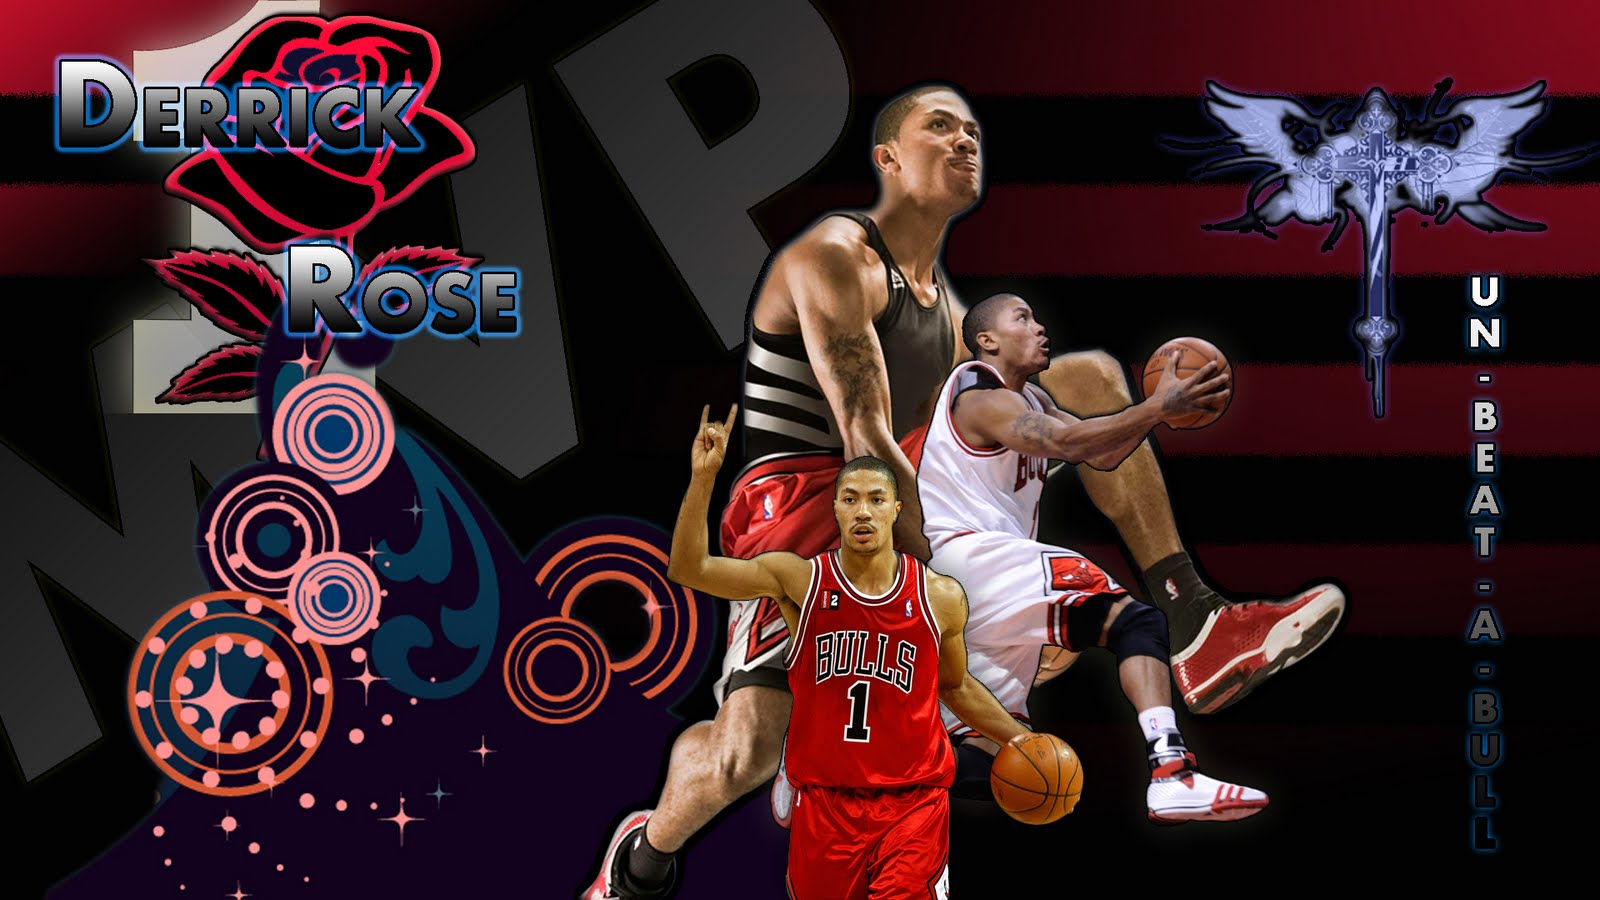 Wallpapers Derrick Rose NBA TSEBA 1600x900